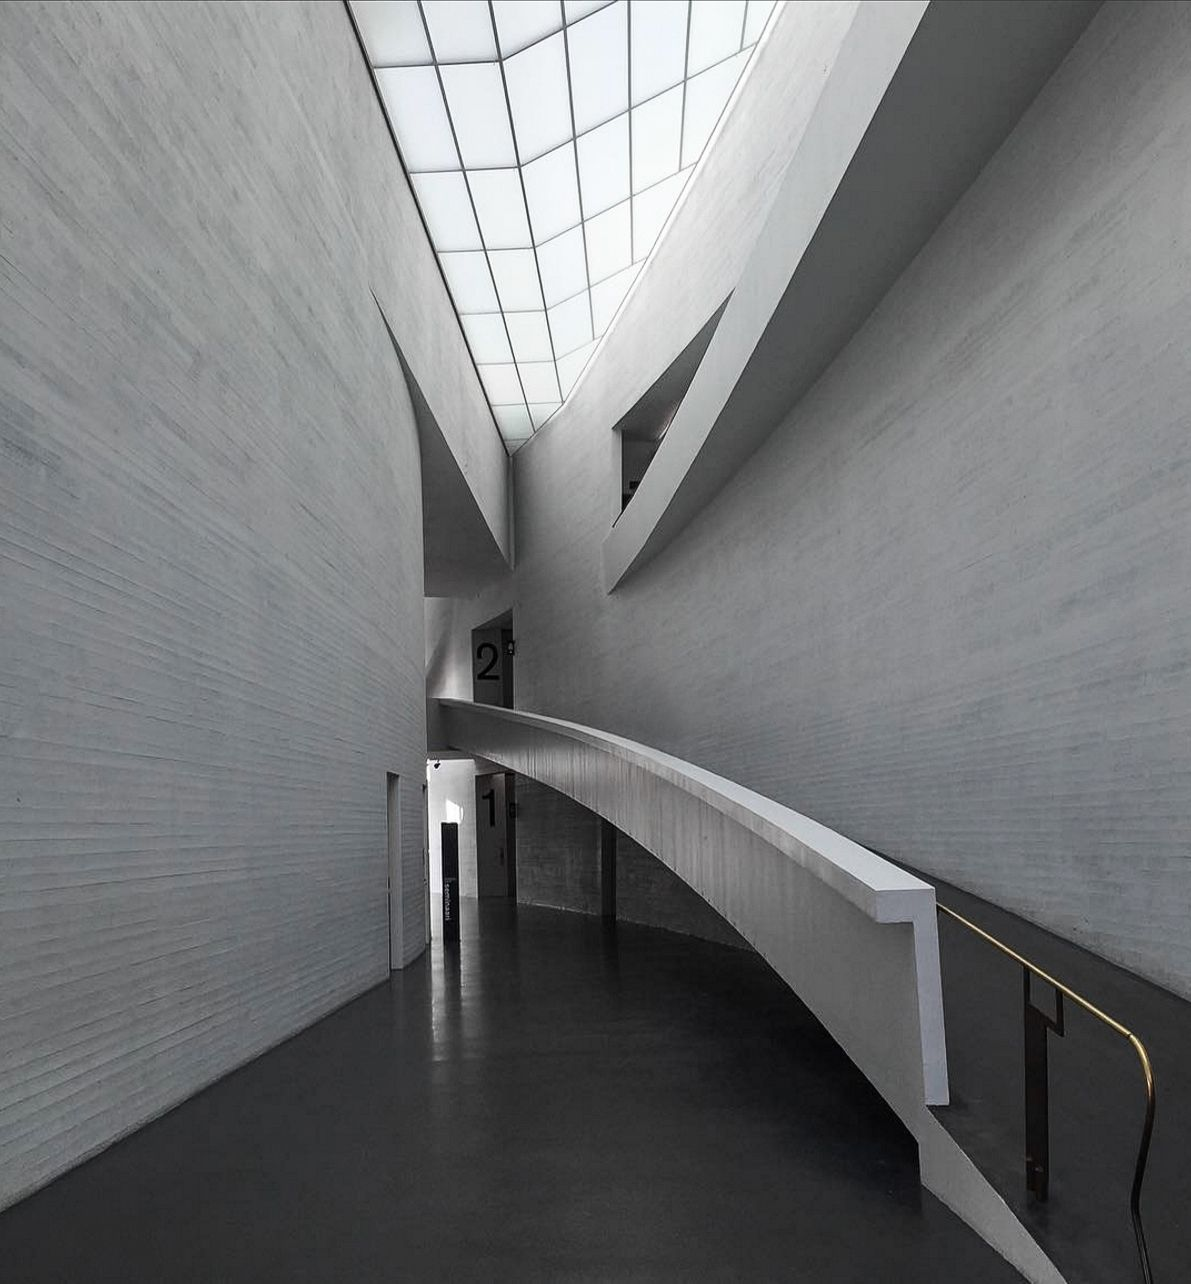 STEVEN HOLL, Kiasma (Contemporary Art Museum of the Finnish National Gallery) Helsinki, Finland, 1993-1998. View from the main entrance hall.